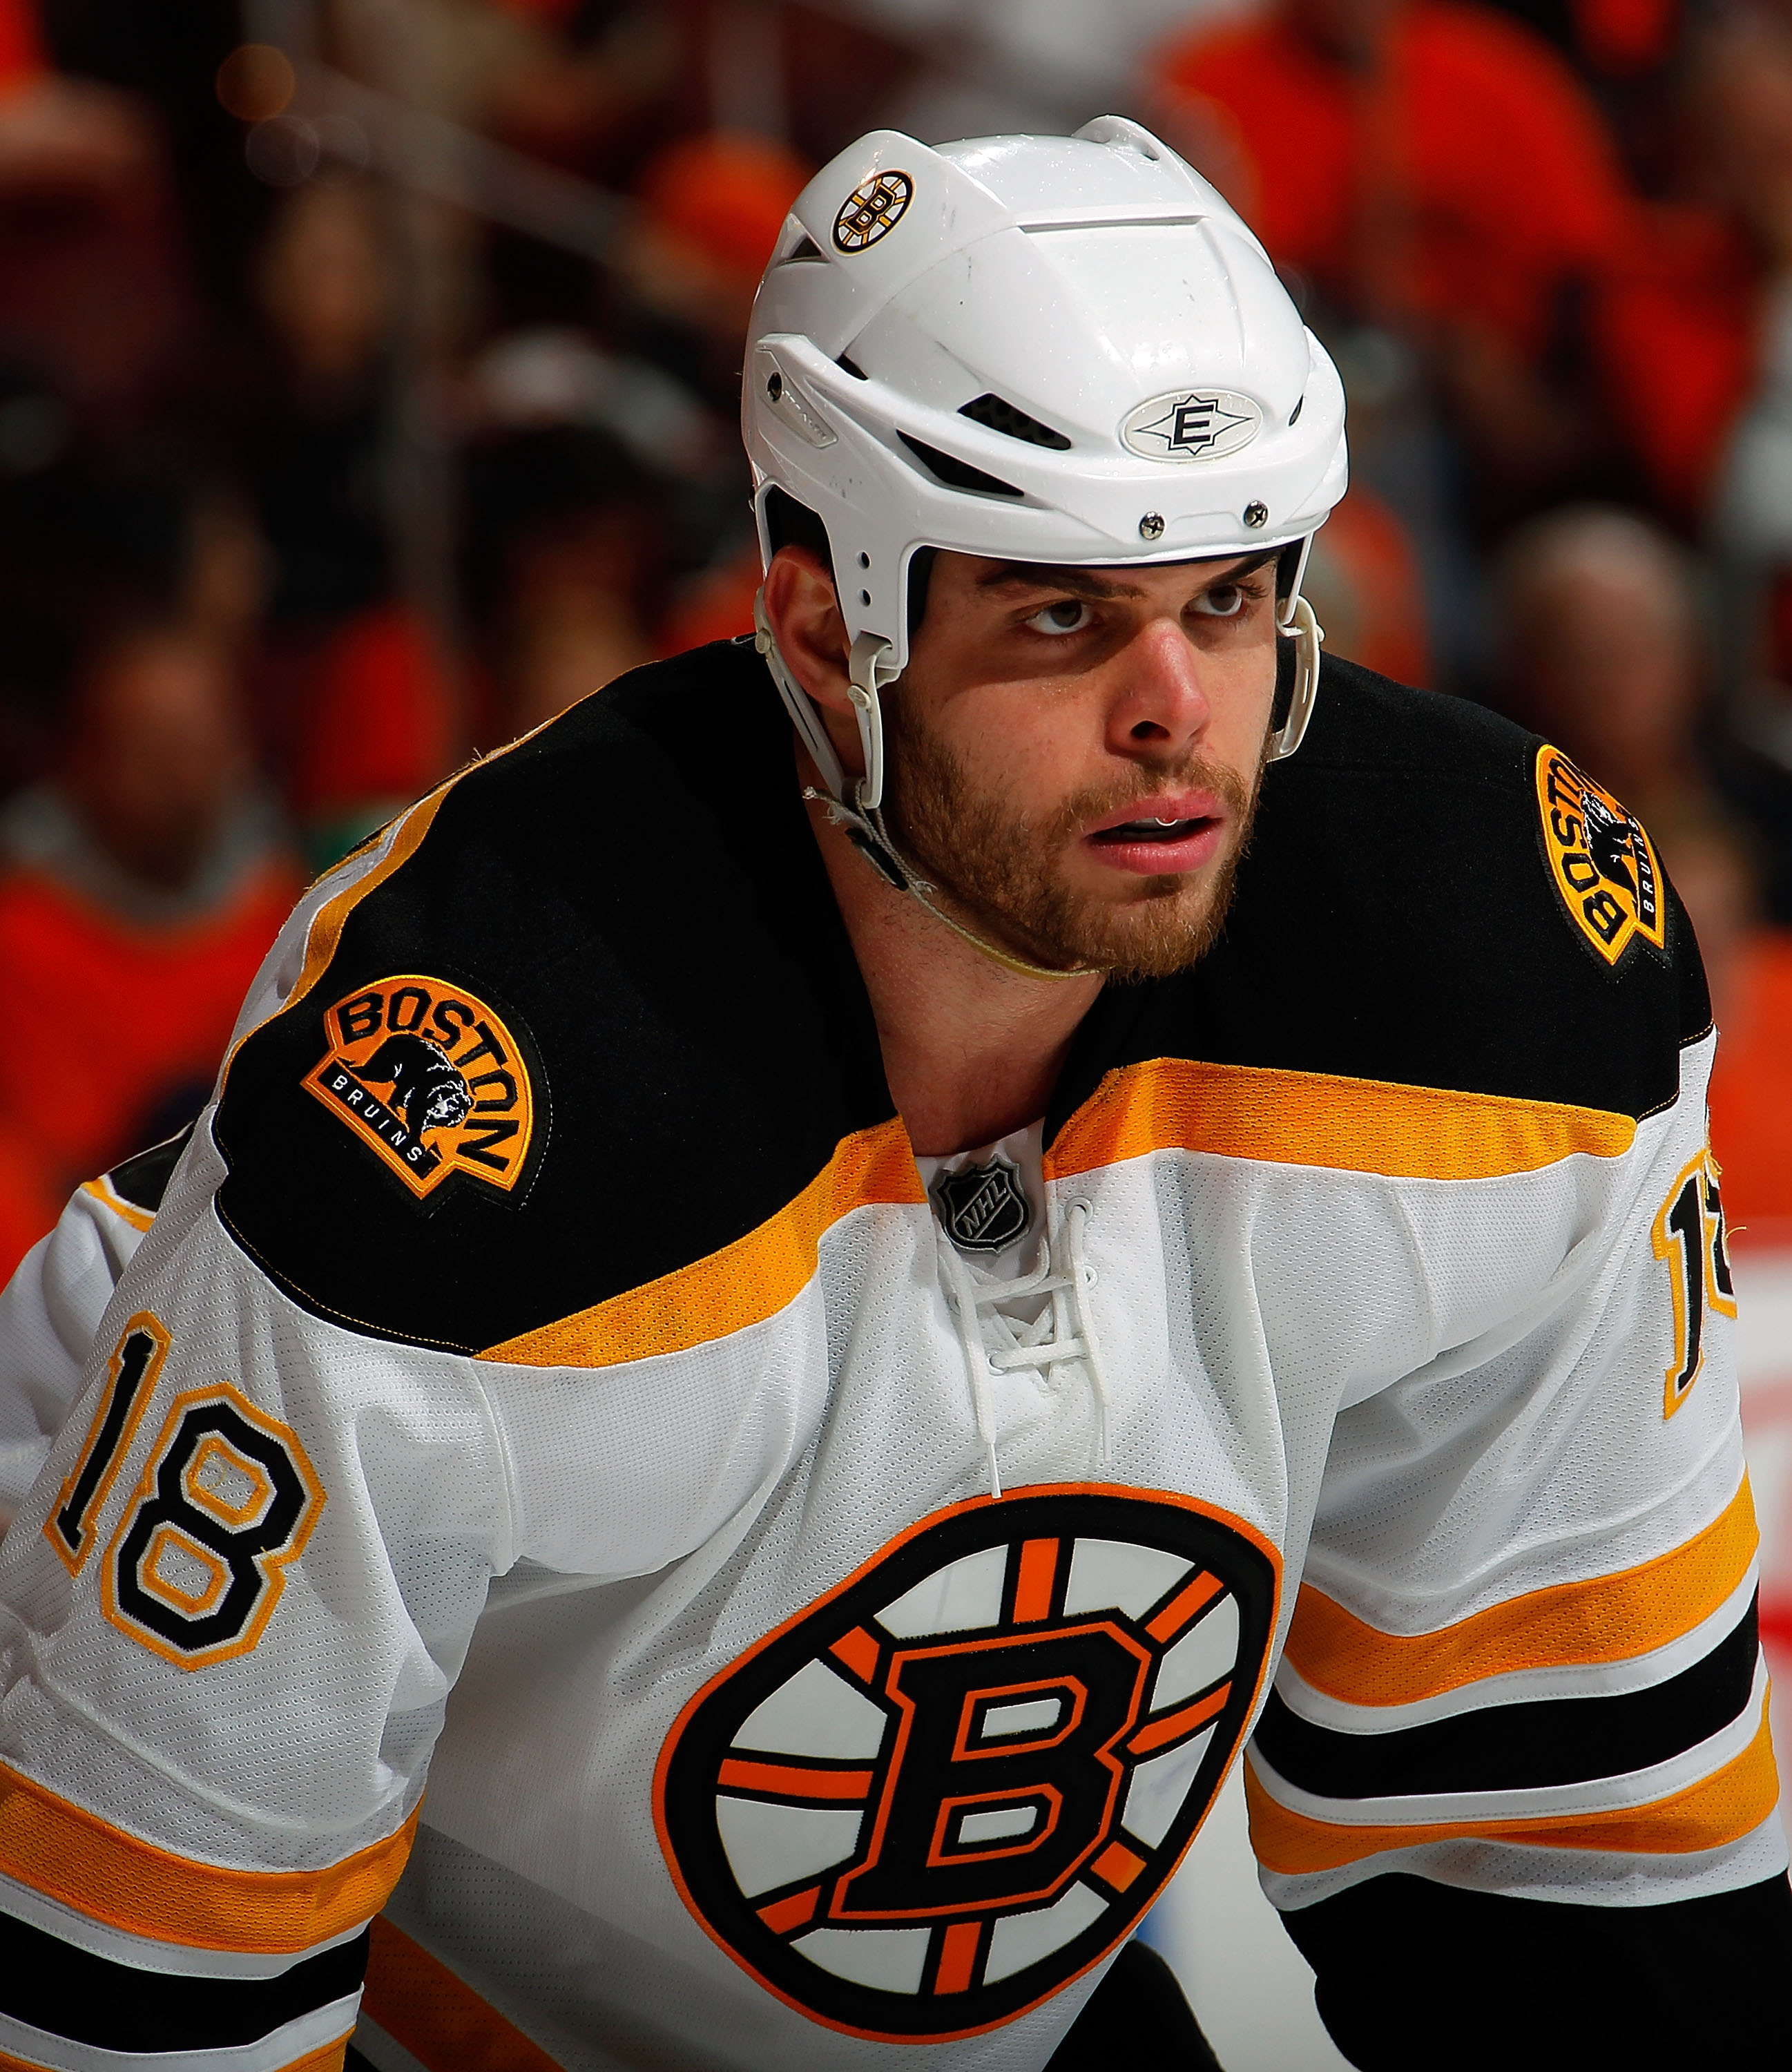 Nathan Horton has gone from hockey purgatory in Florida to hockey nirvana in Boston